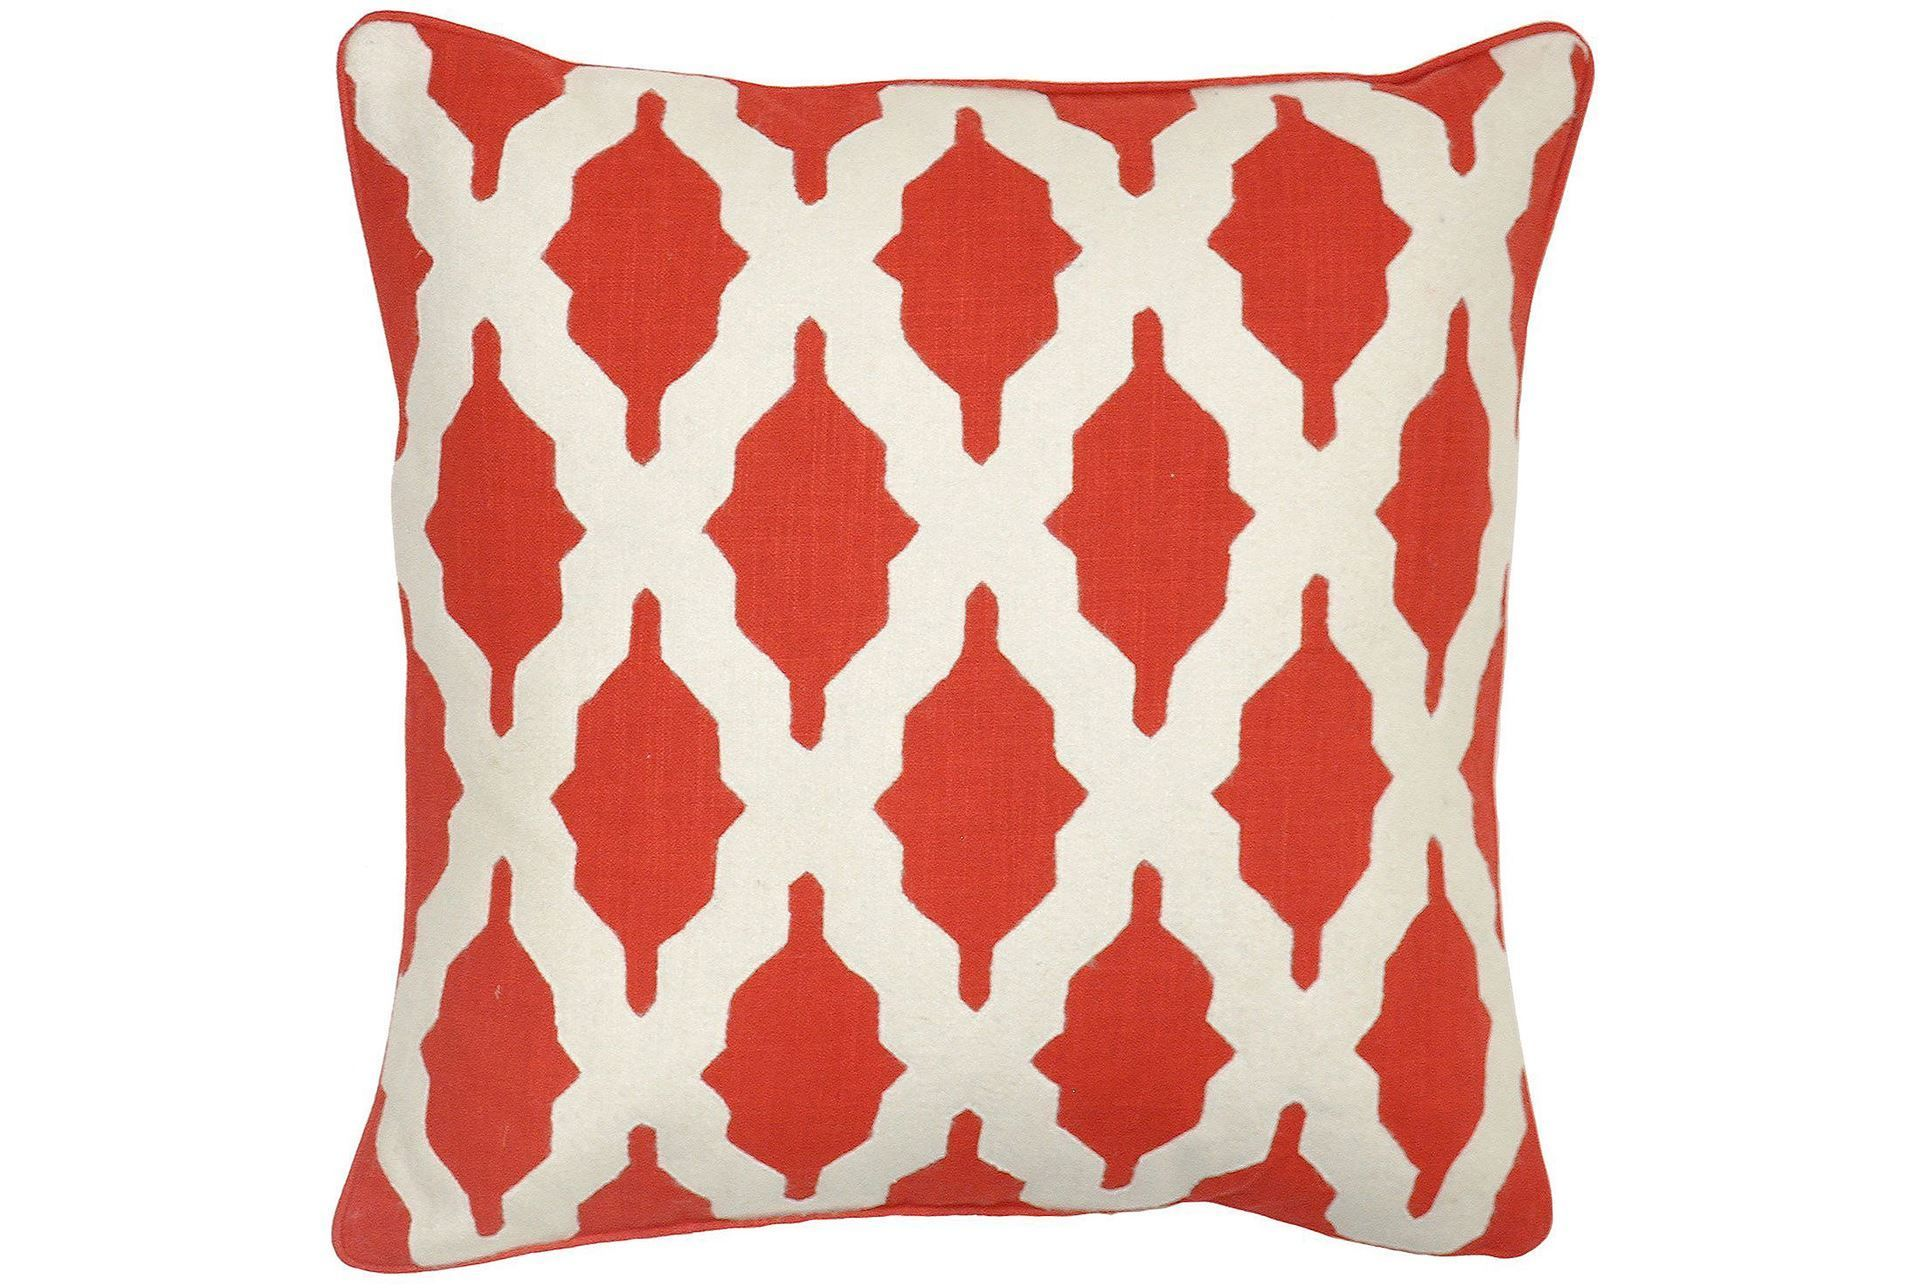 Made from cotton the bathesda red accent pillow impresses with